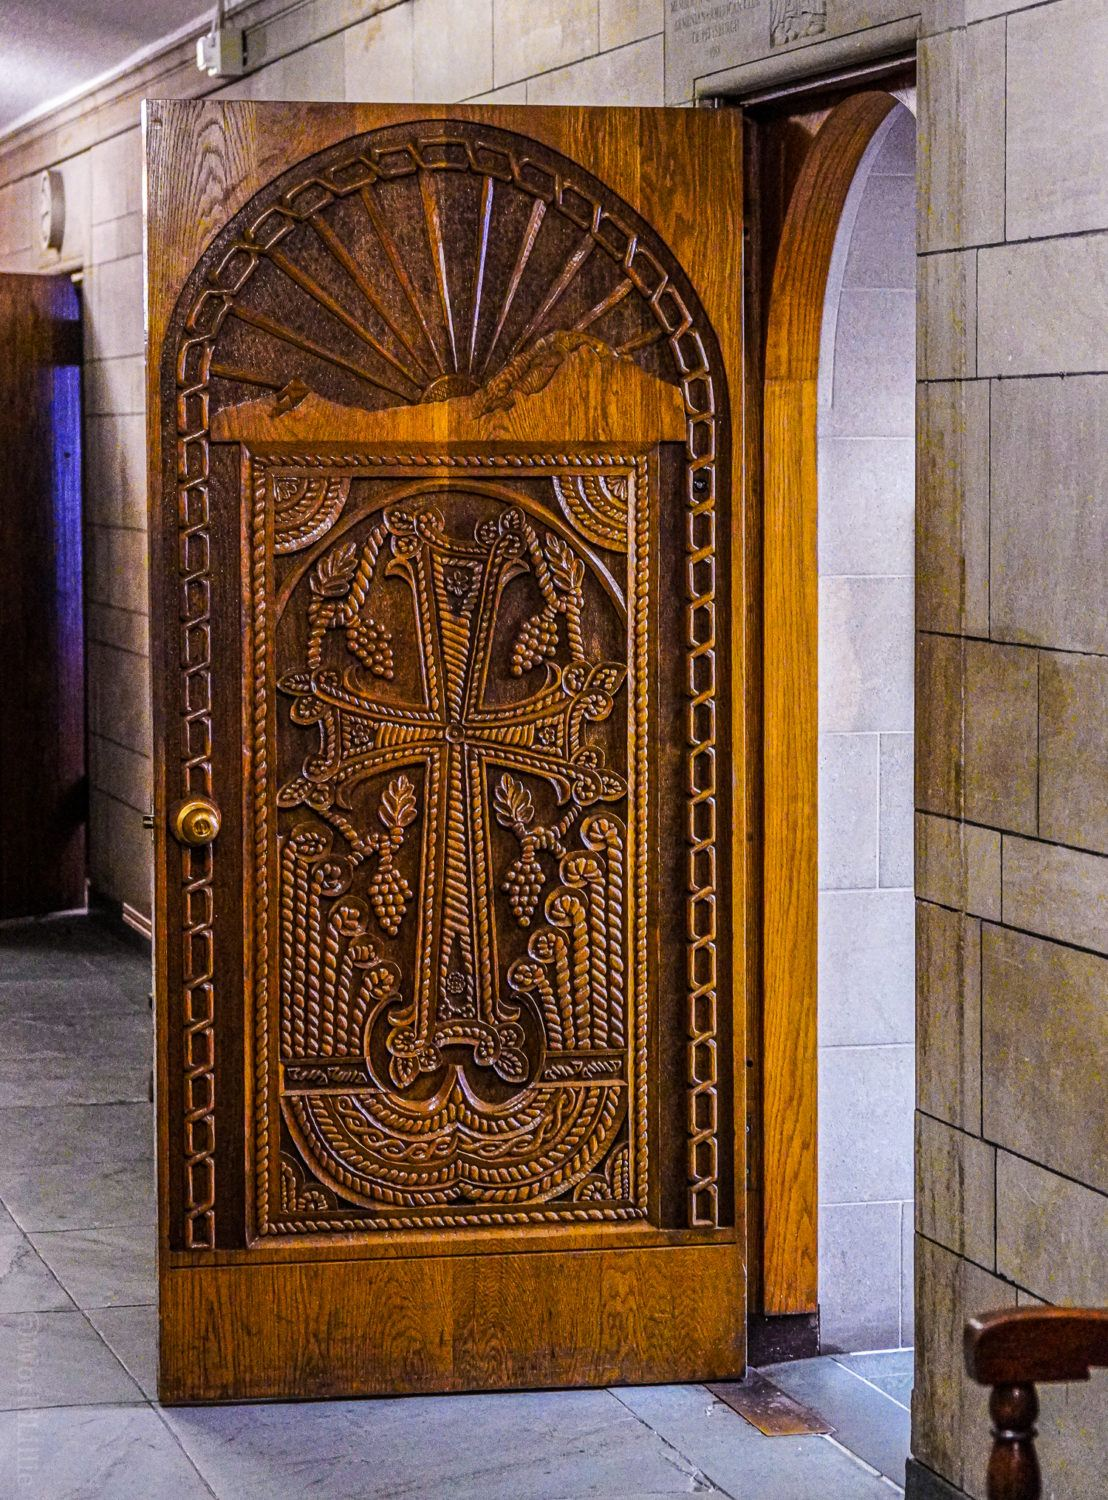 An ornate wooden door in the Armenian room.